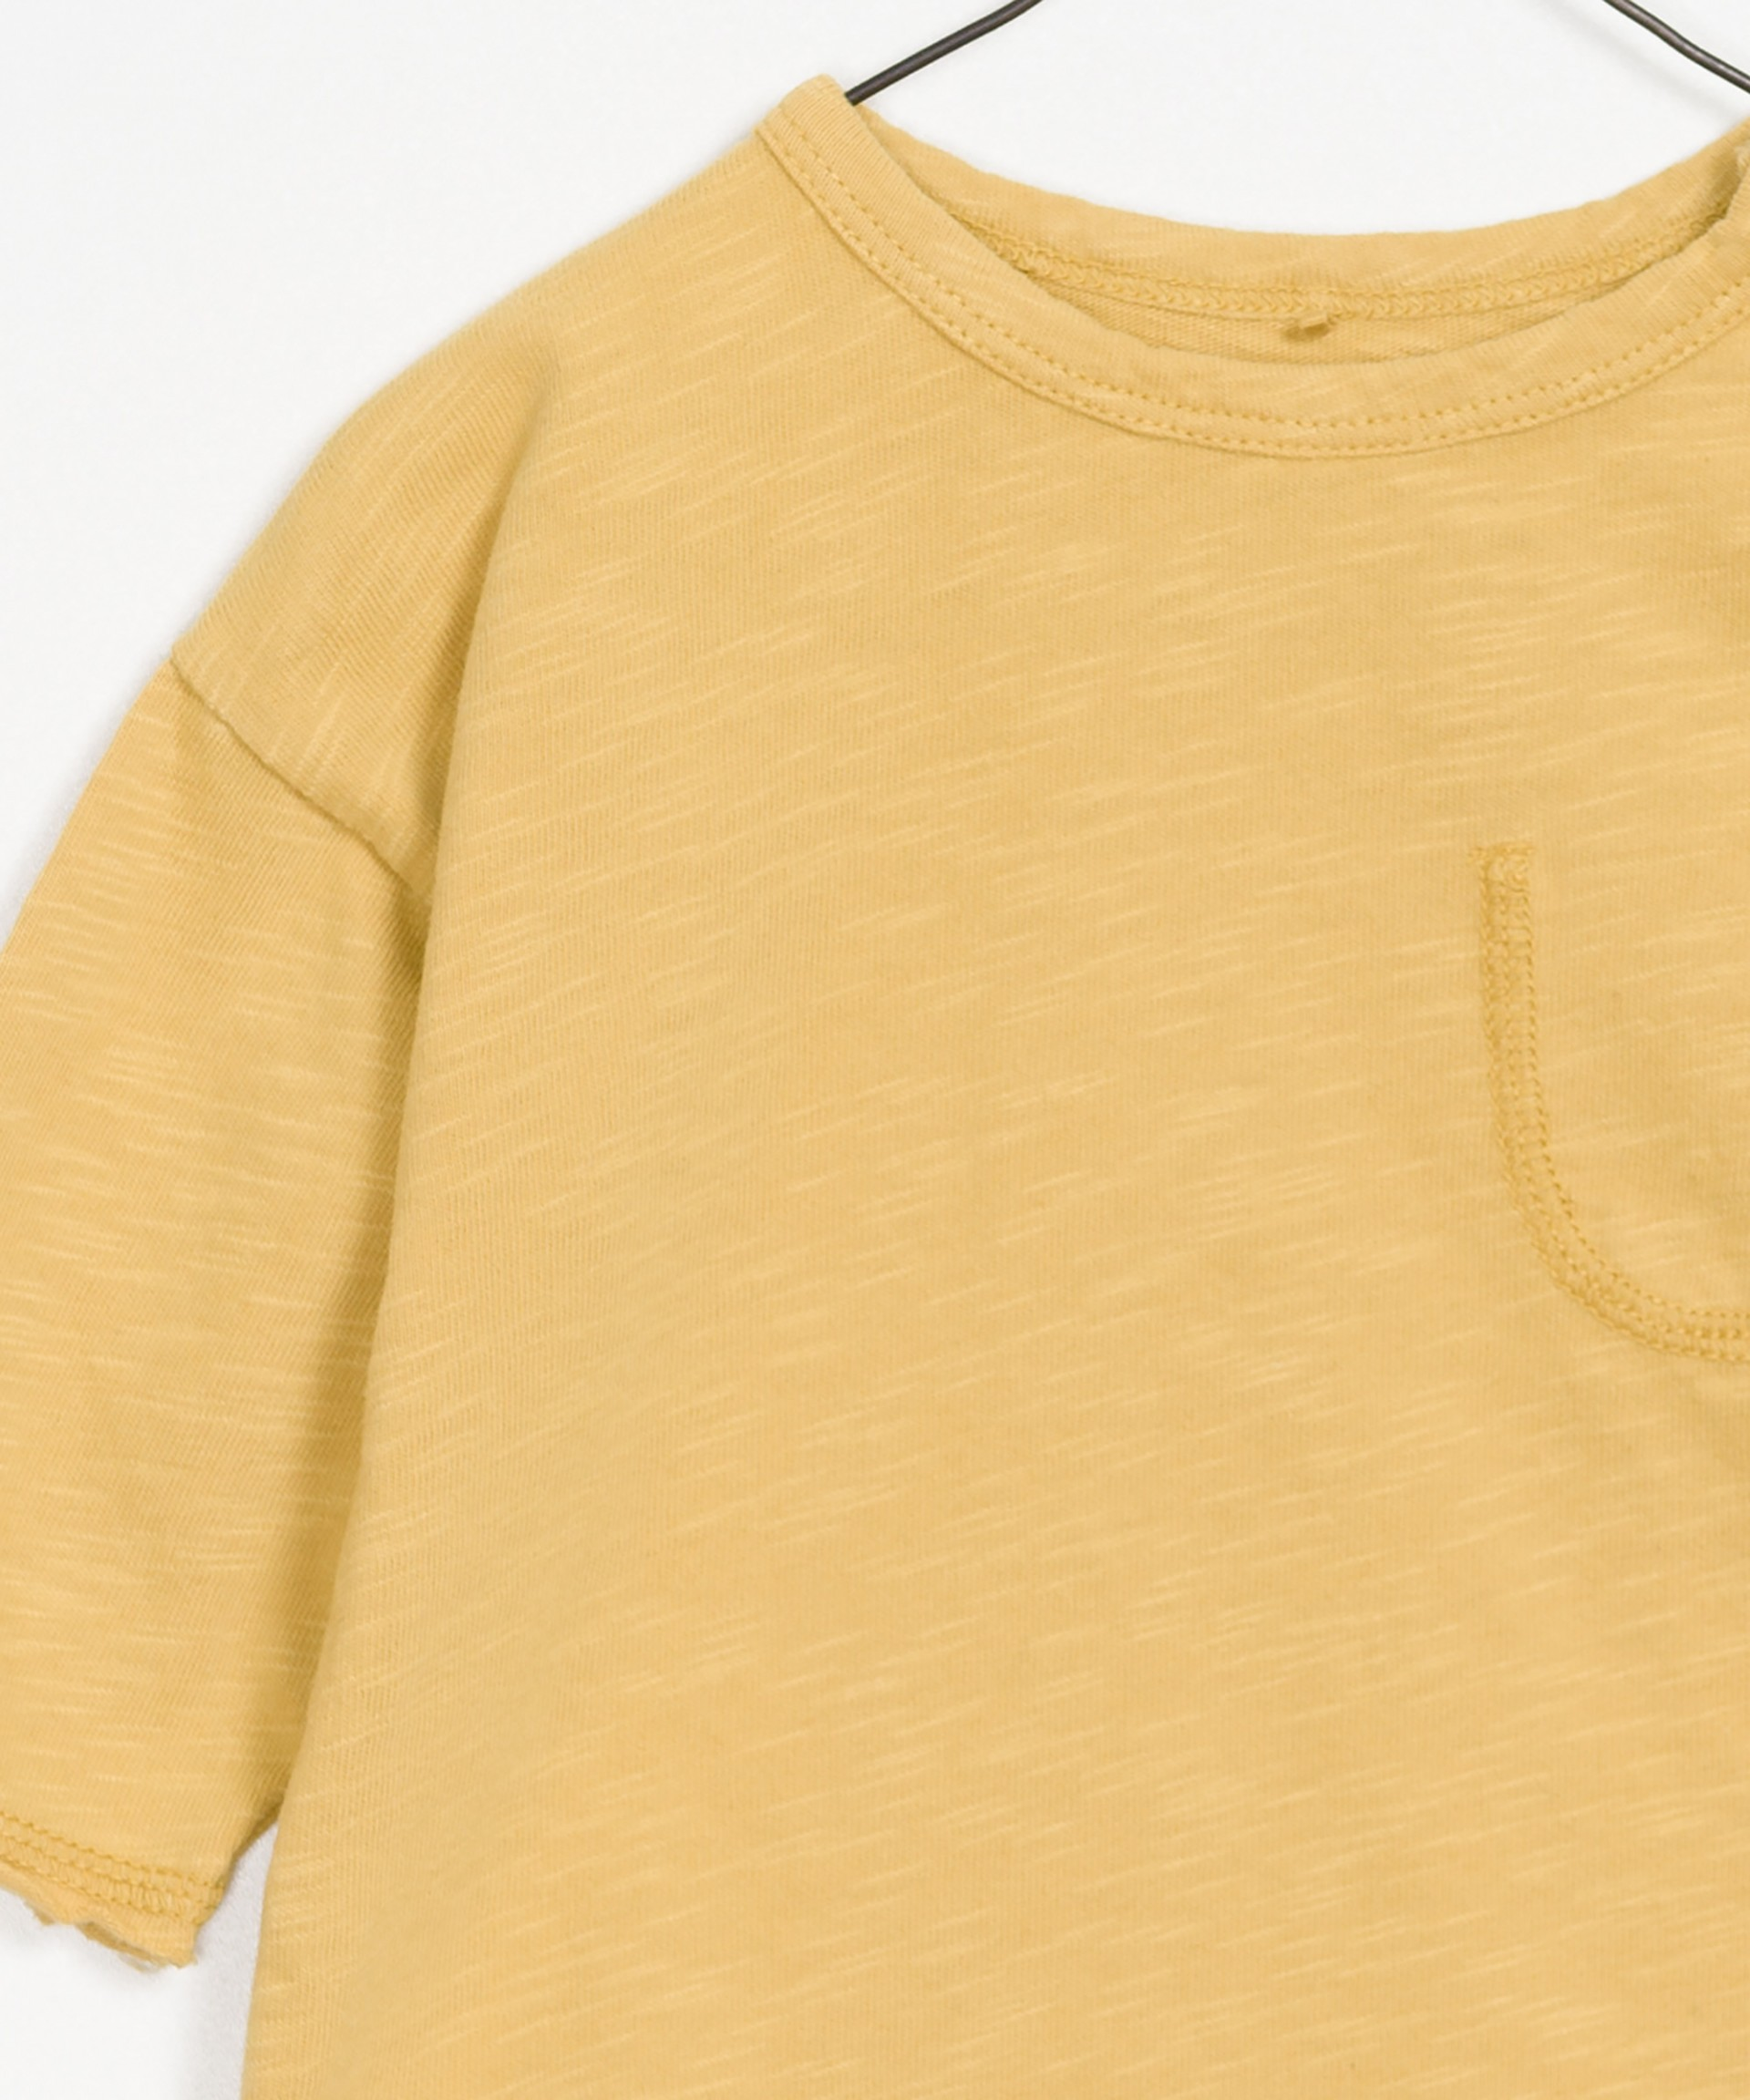 Basic 100% Organic Cotton Sweatshirt